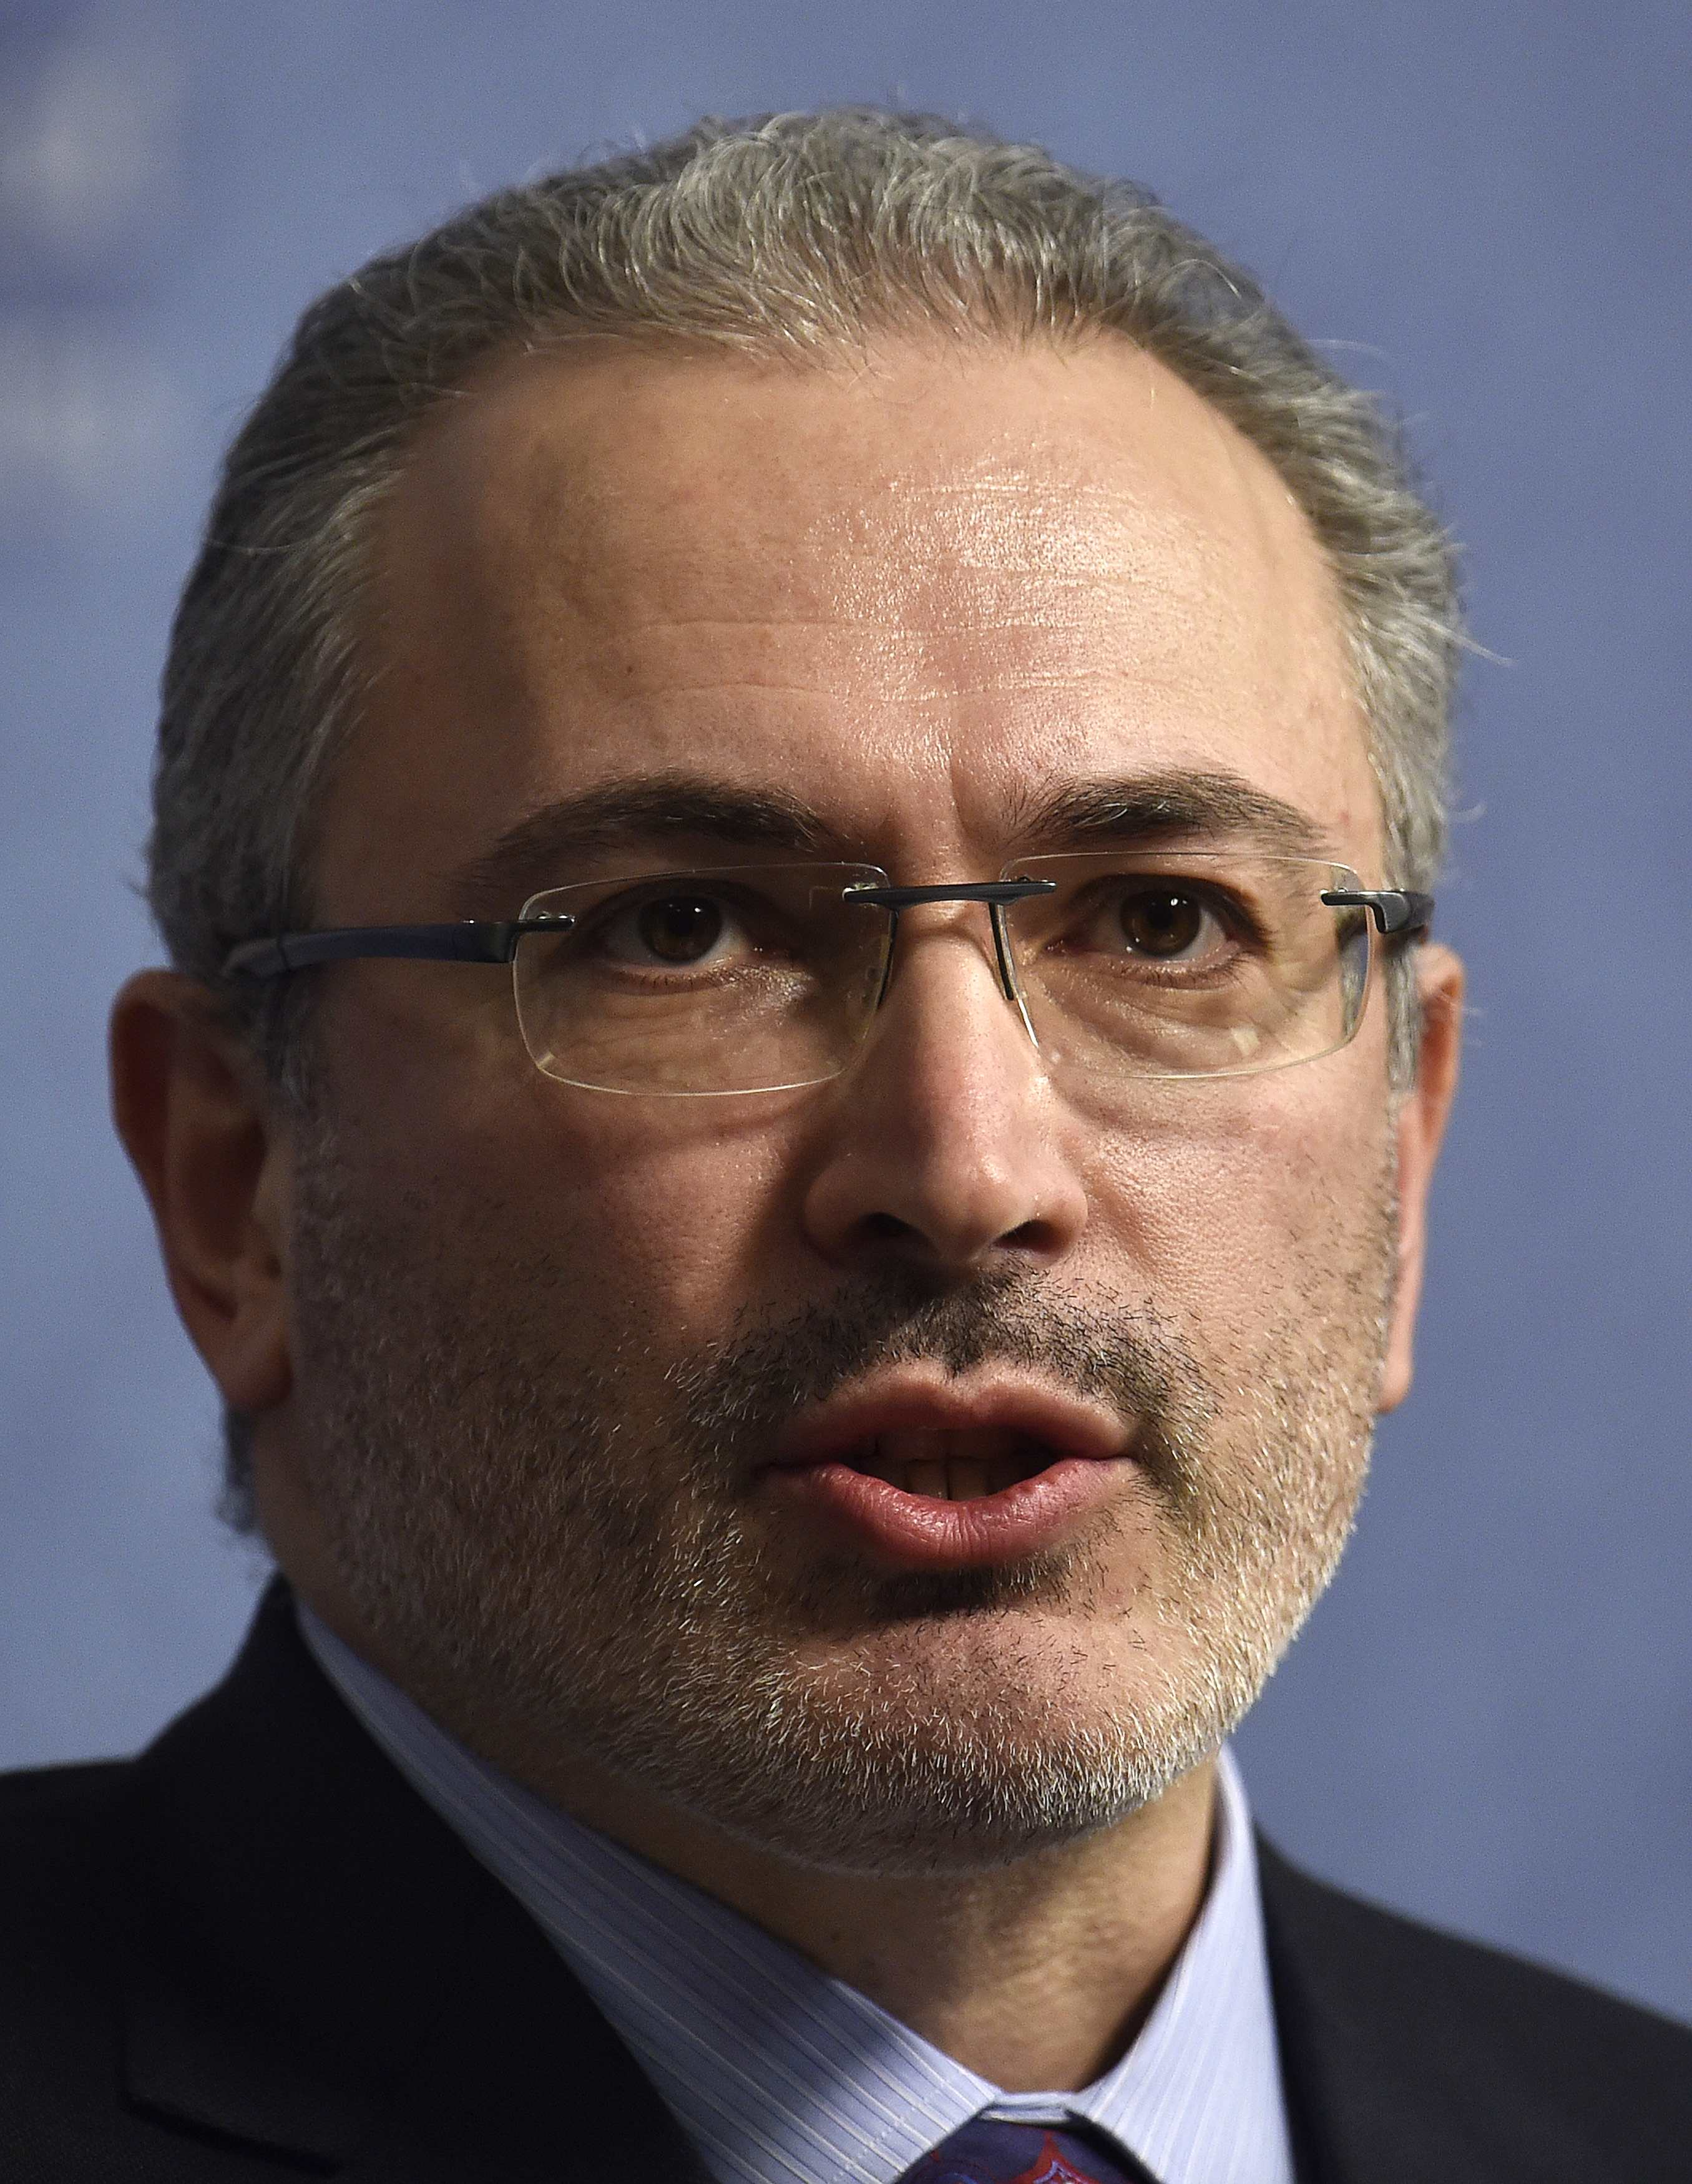 Ukraine war to be Putin's undoing, Khodorkovsky says